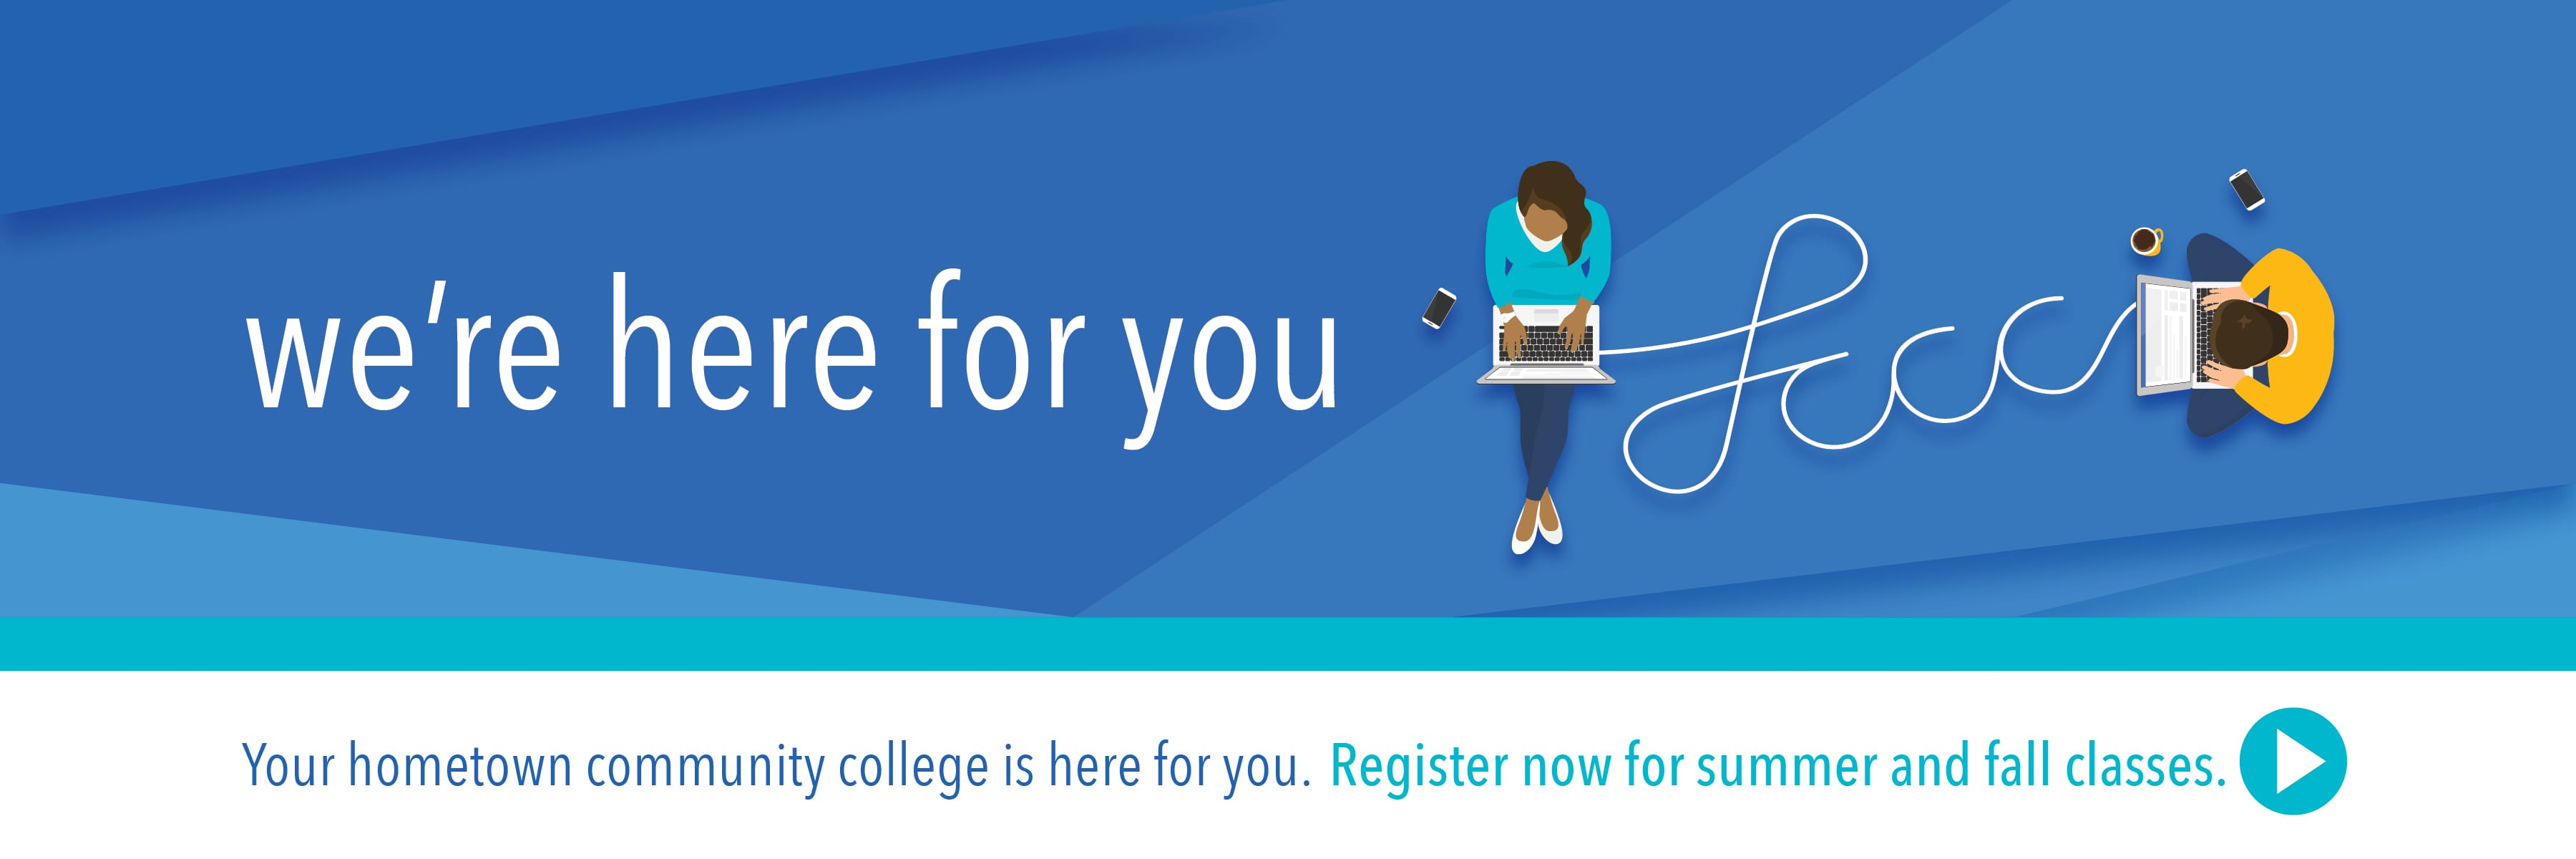 Your hometown college is here for you. Register for summer and fall classes